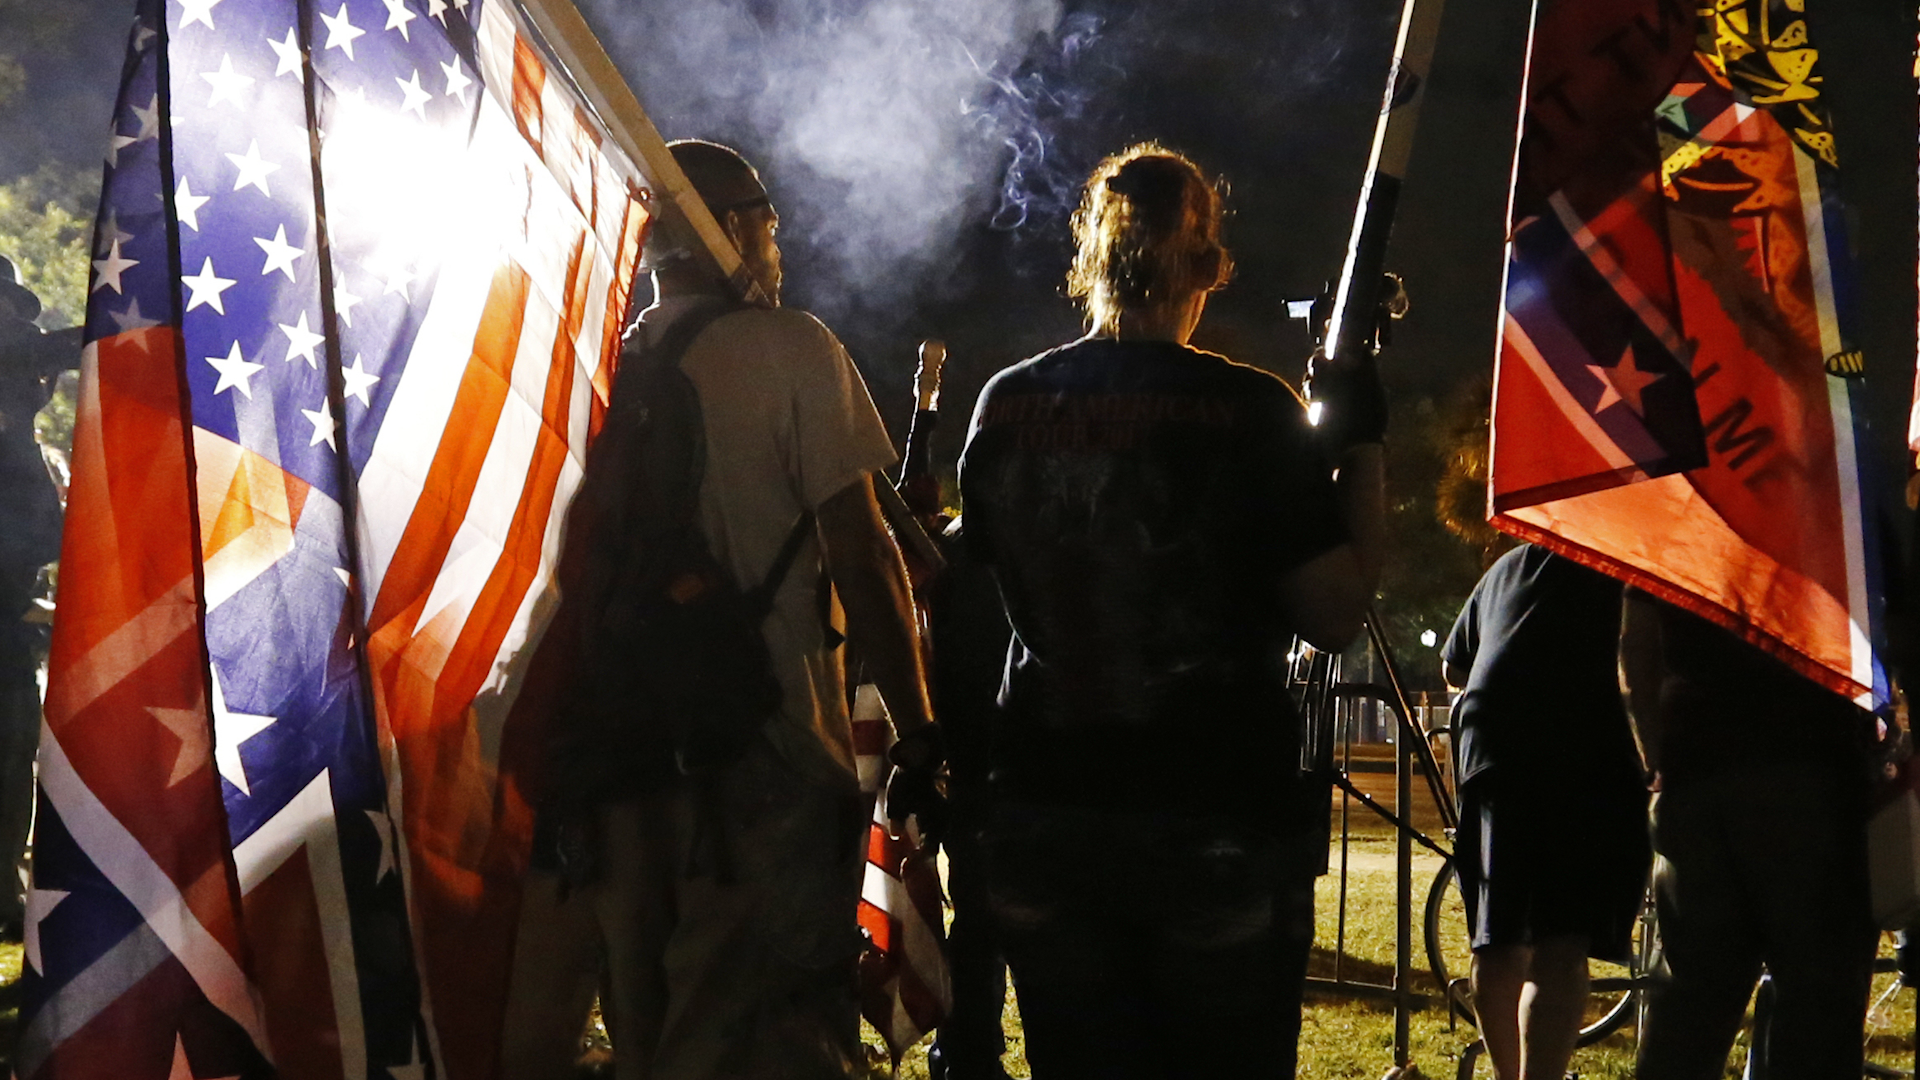 The Confederate flag largely disappeared after the Civil War. The fight against civil rights brought it back.